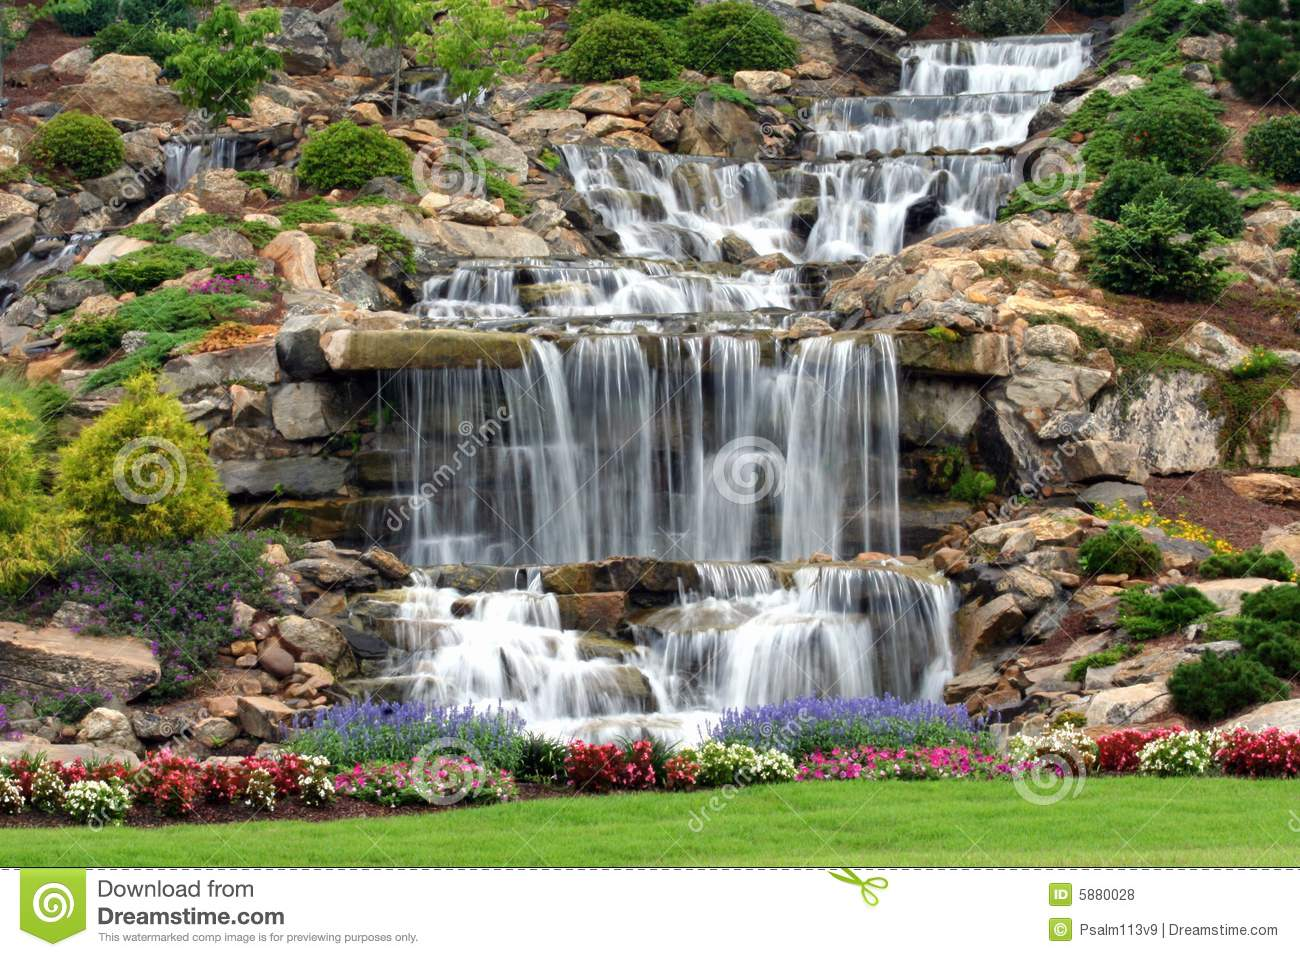 Man Made Waterfall Royalty Free Stock Photos  Image: 5880028